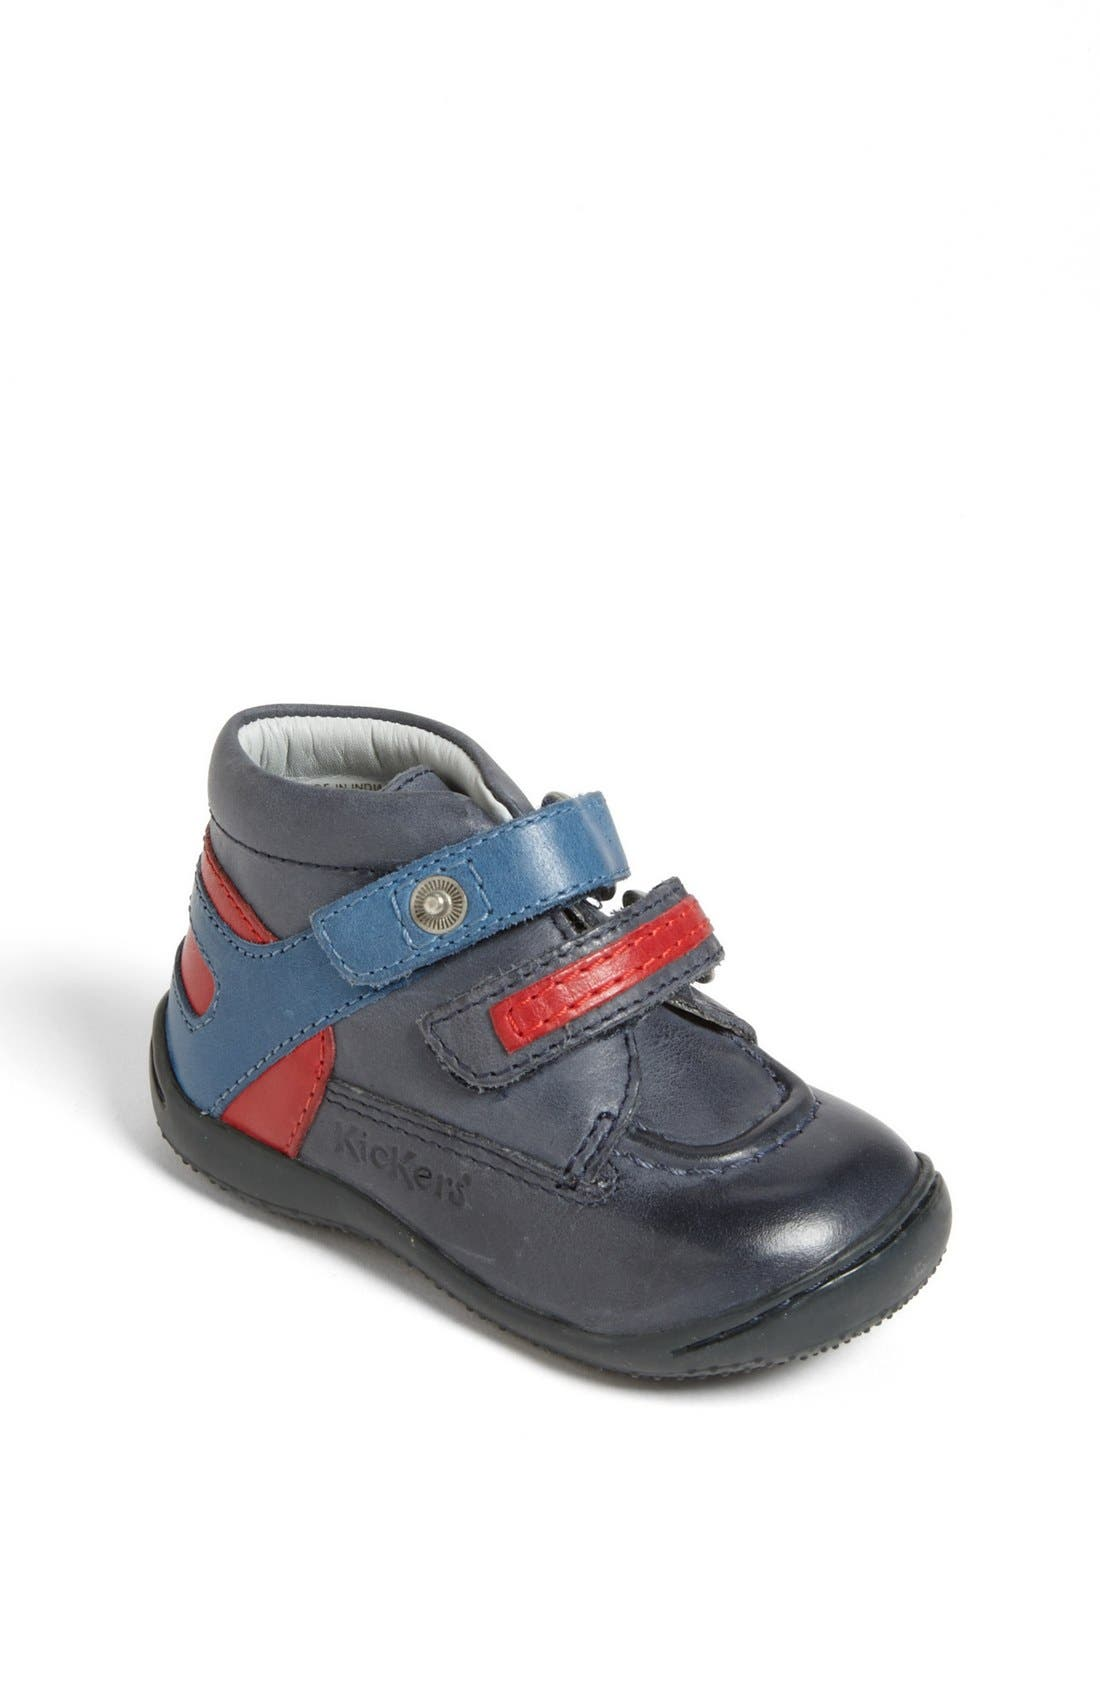 Alternate Image 1 Selected - Kickers 'Geneva' Boot (Baby, Walker & Toddler)